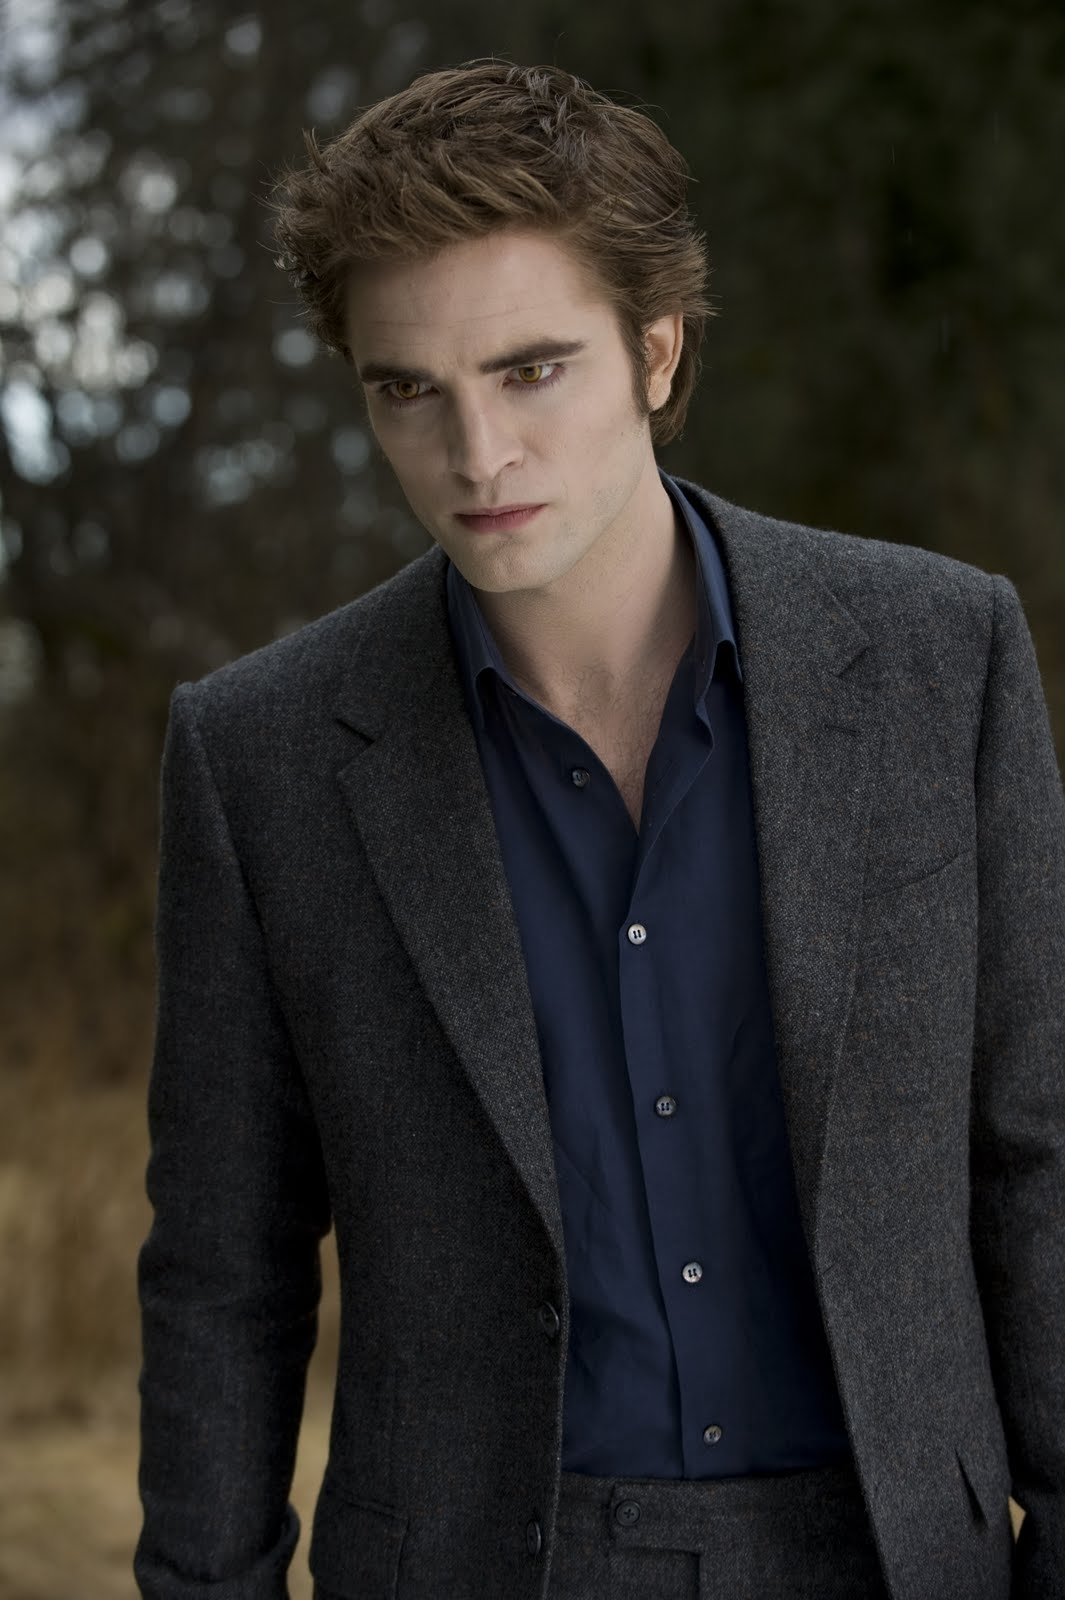 Robert Pattinson And Edward Cullen Robert Pattinson